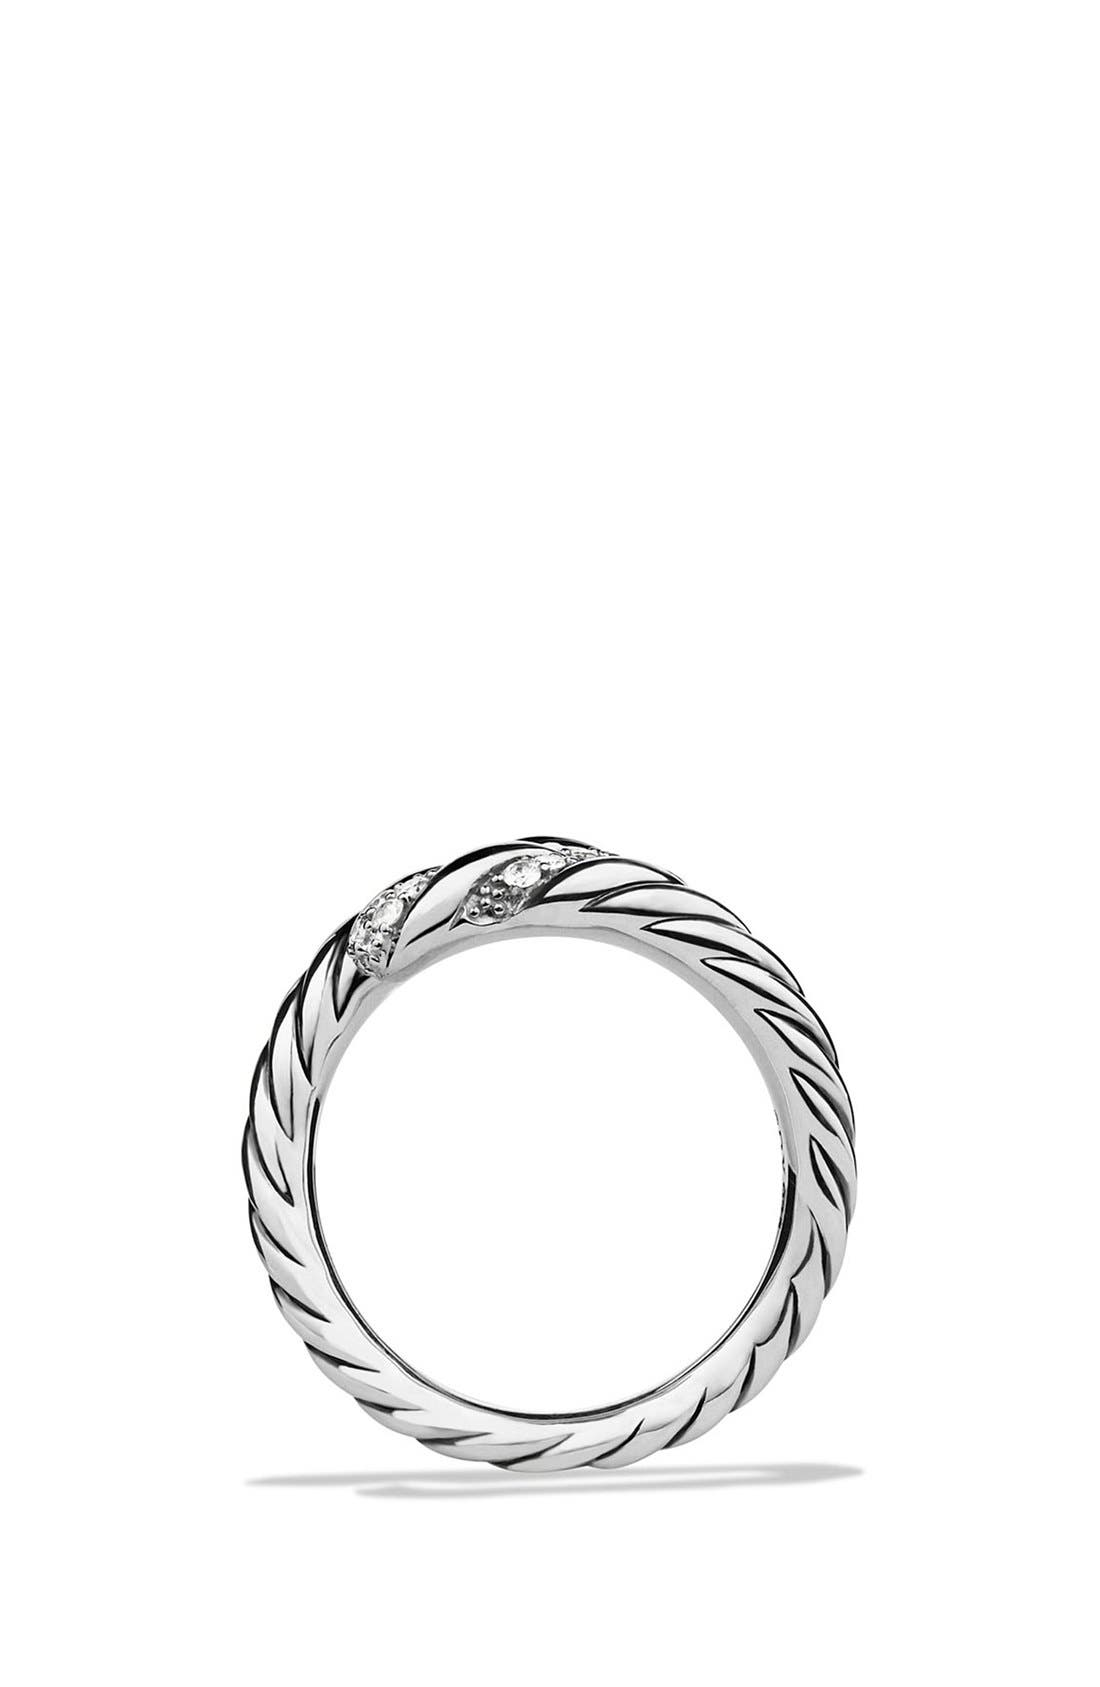 'Willow' Open Single Row Ring with Diamonds,                             Alternate thumbnail 2, color,                             040